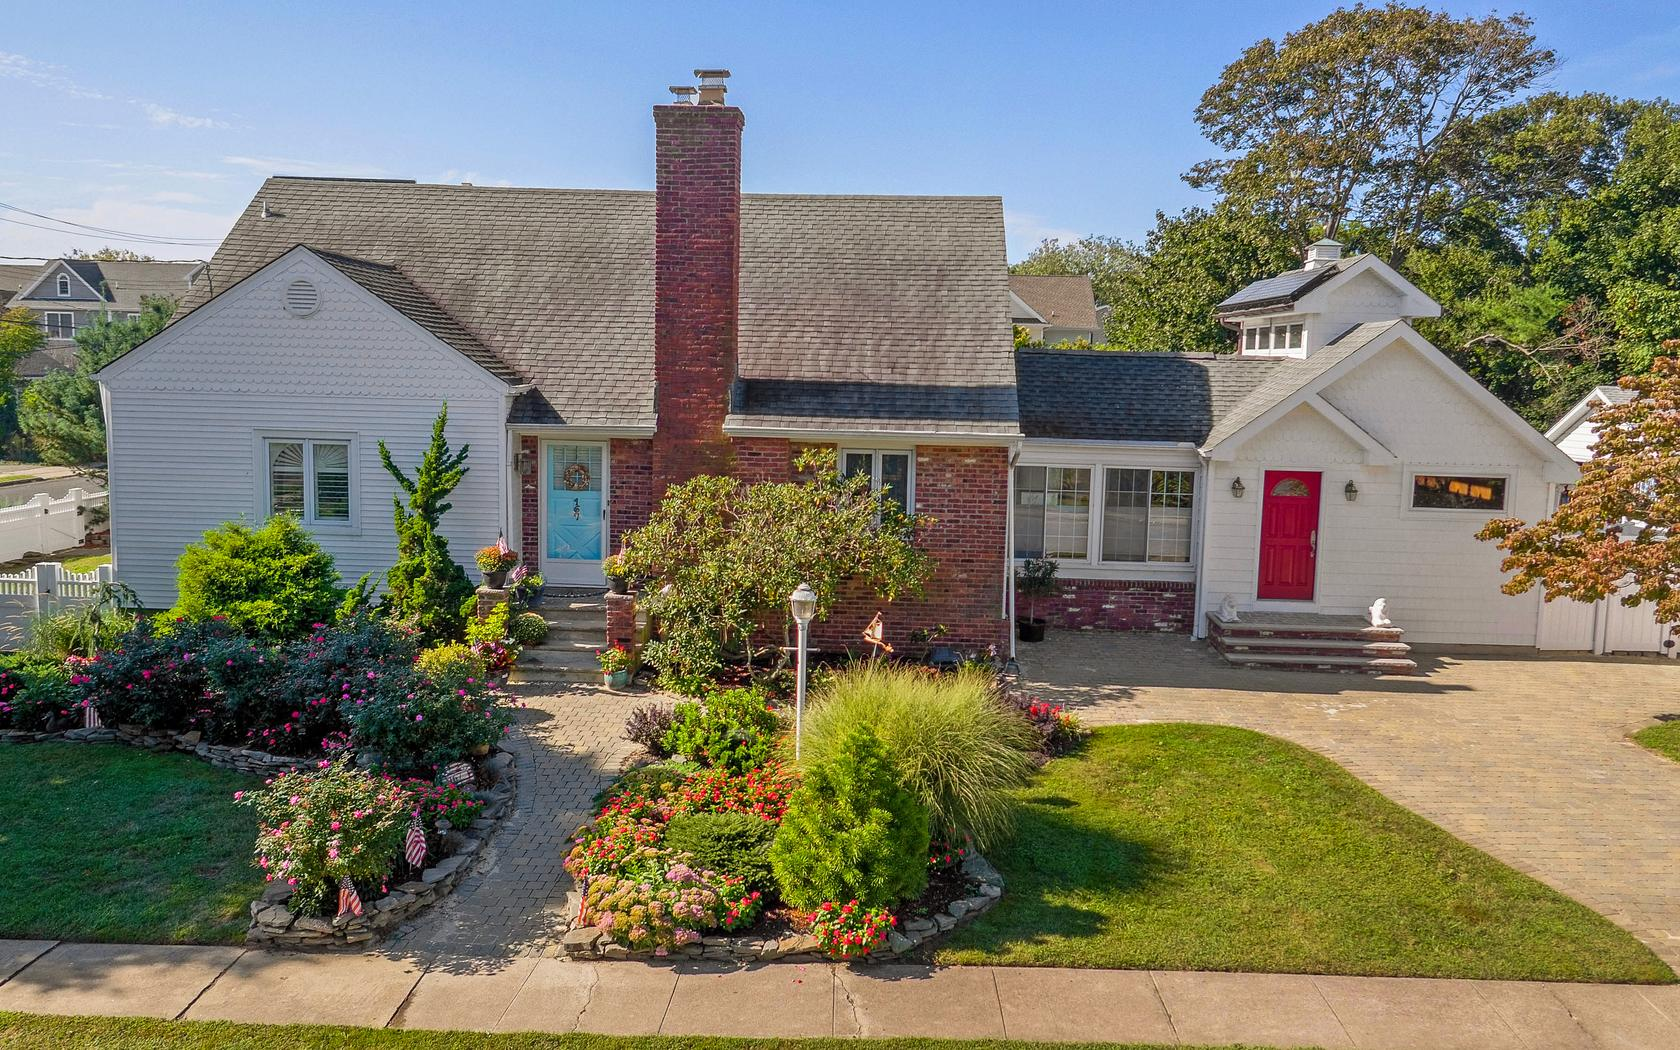 Single Family Home for Sale at Custom Spacious Cape 167 McLean Ave Manasquan, New Jersey 08736 United States